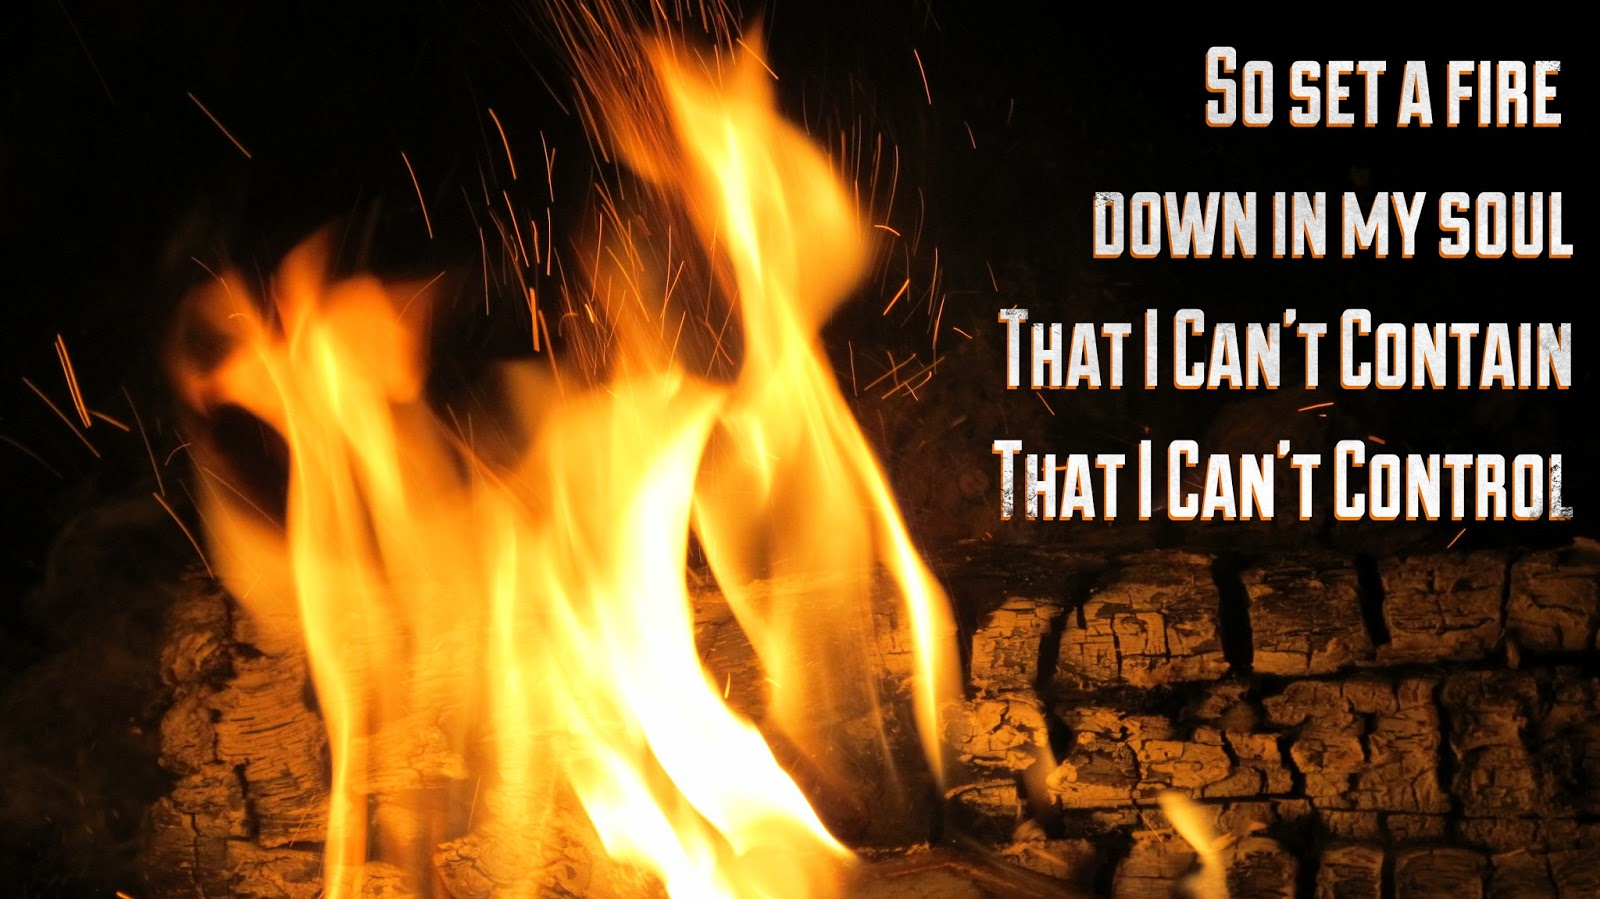 Bonfire Quotes Sayings. QuotesGram